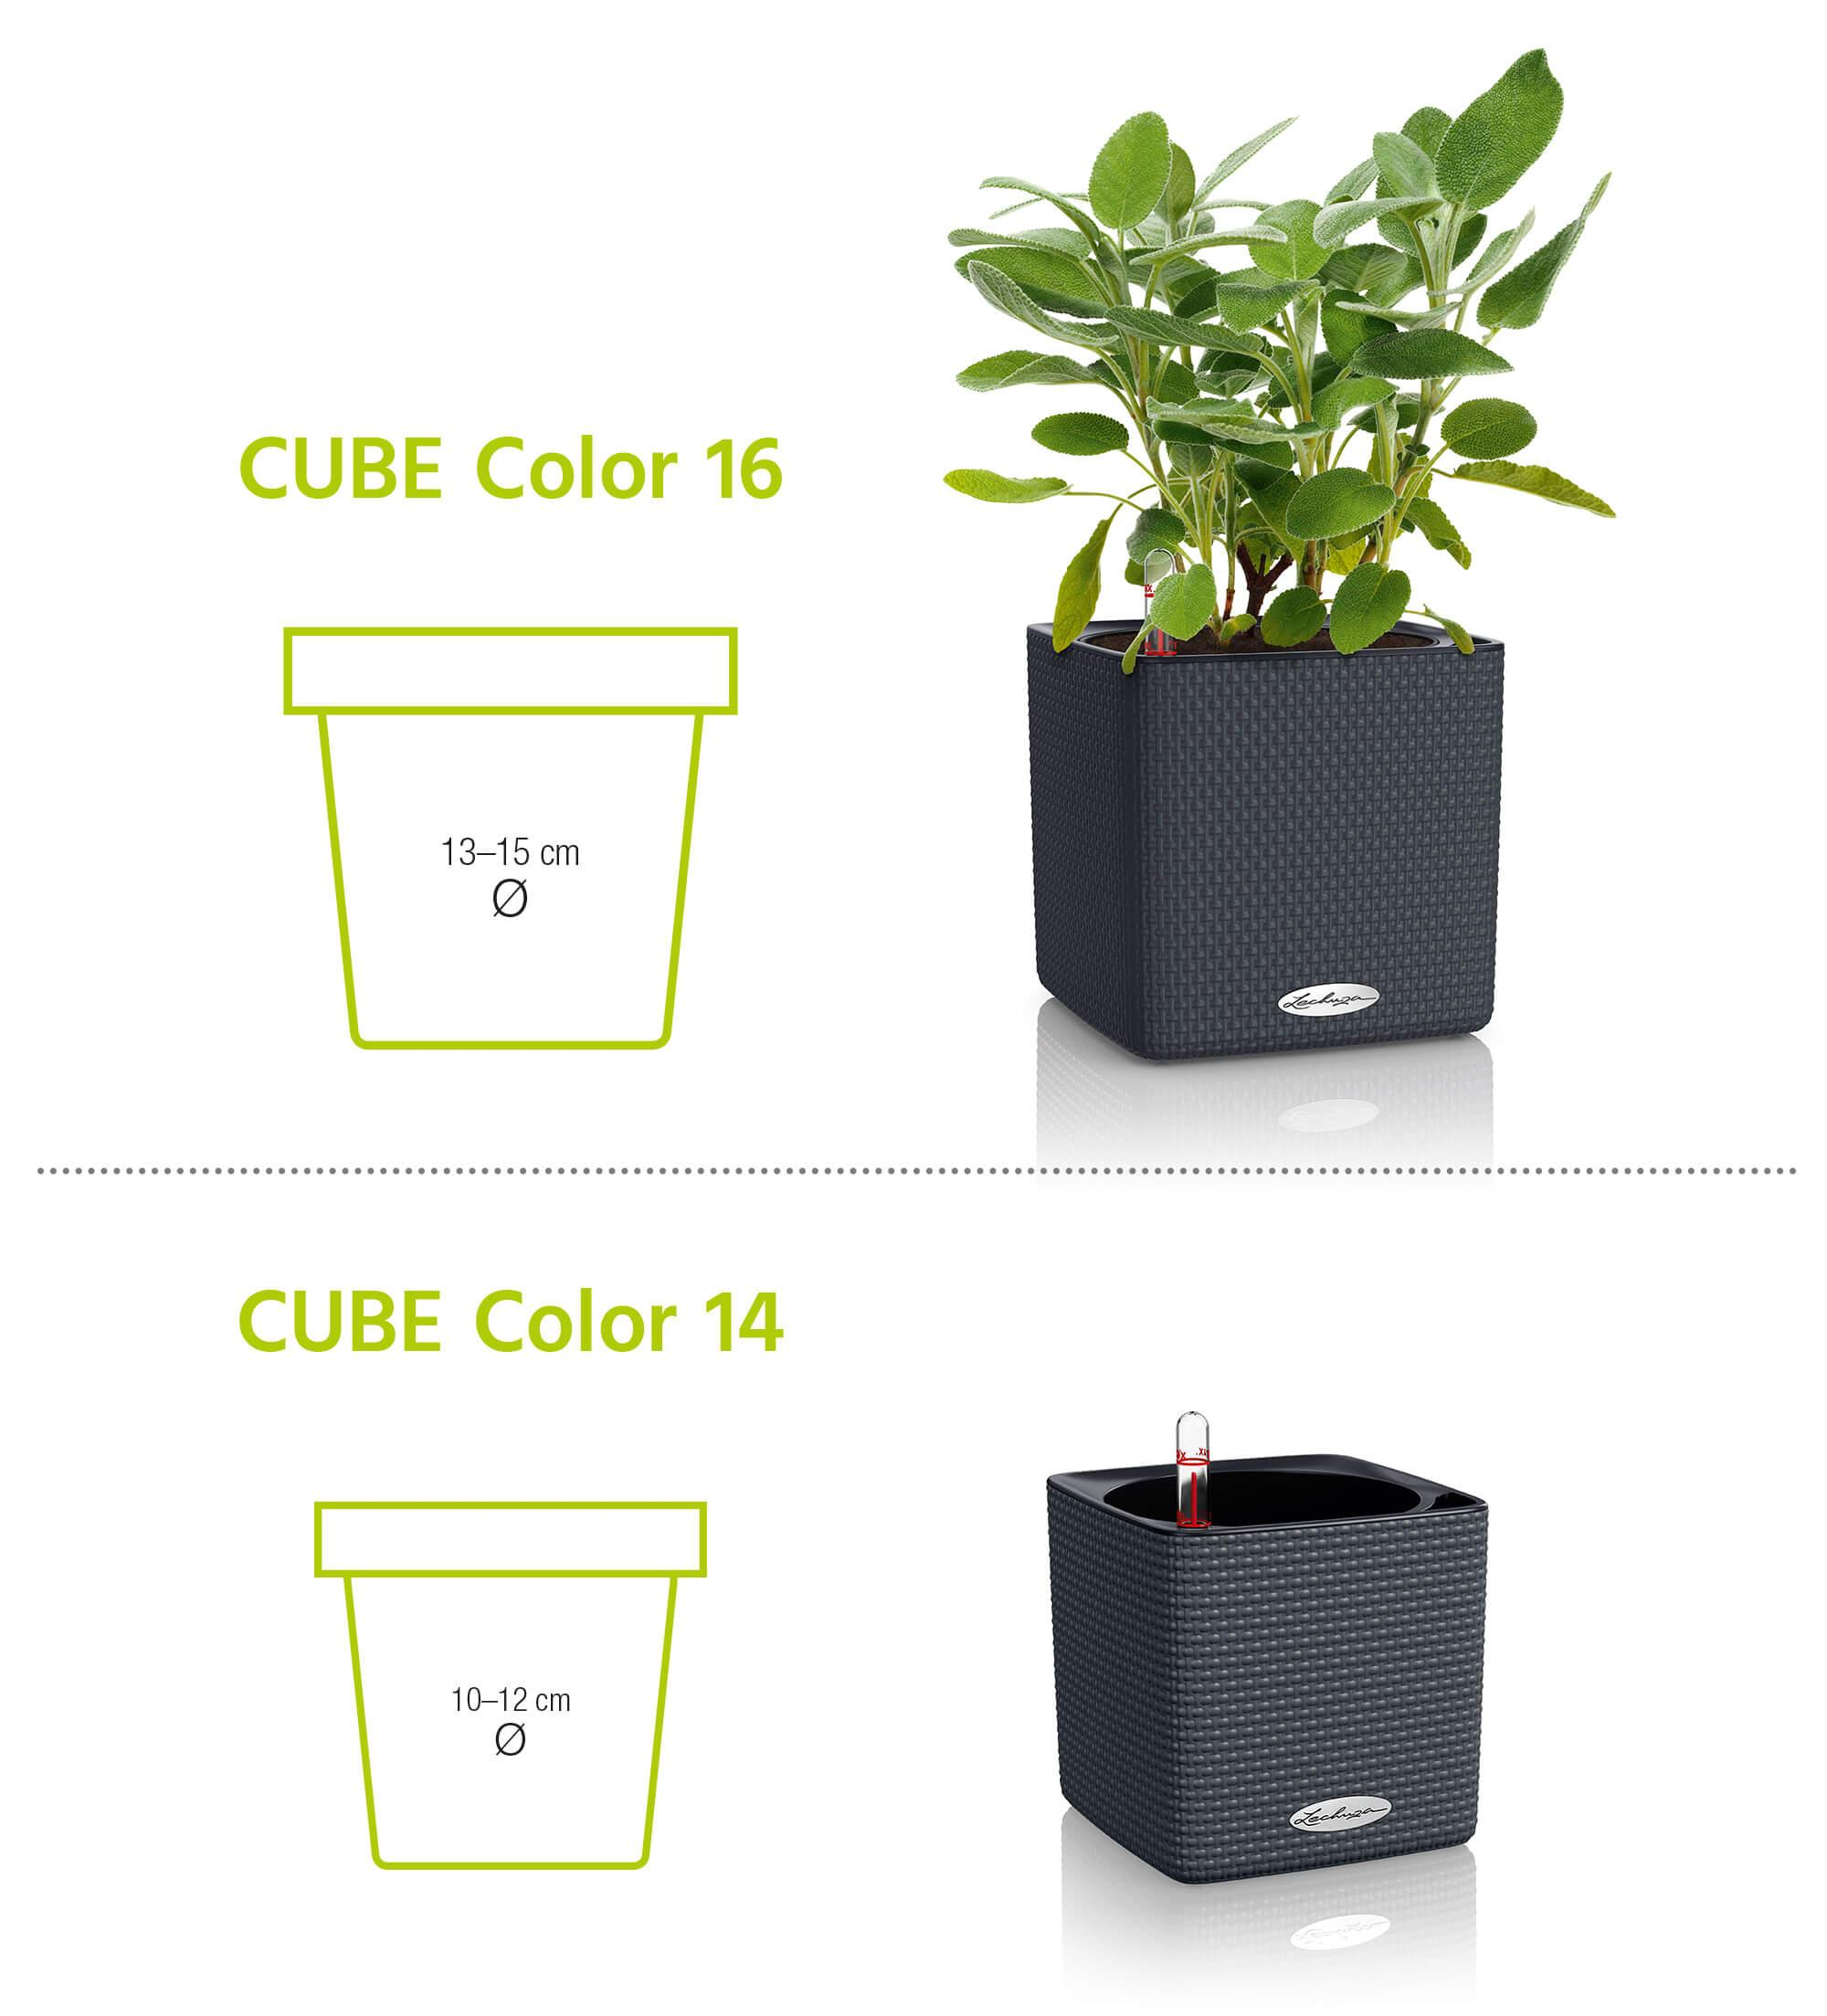 le_cube-color_product_content_02